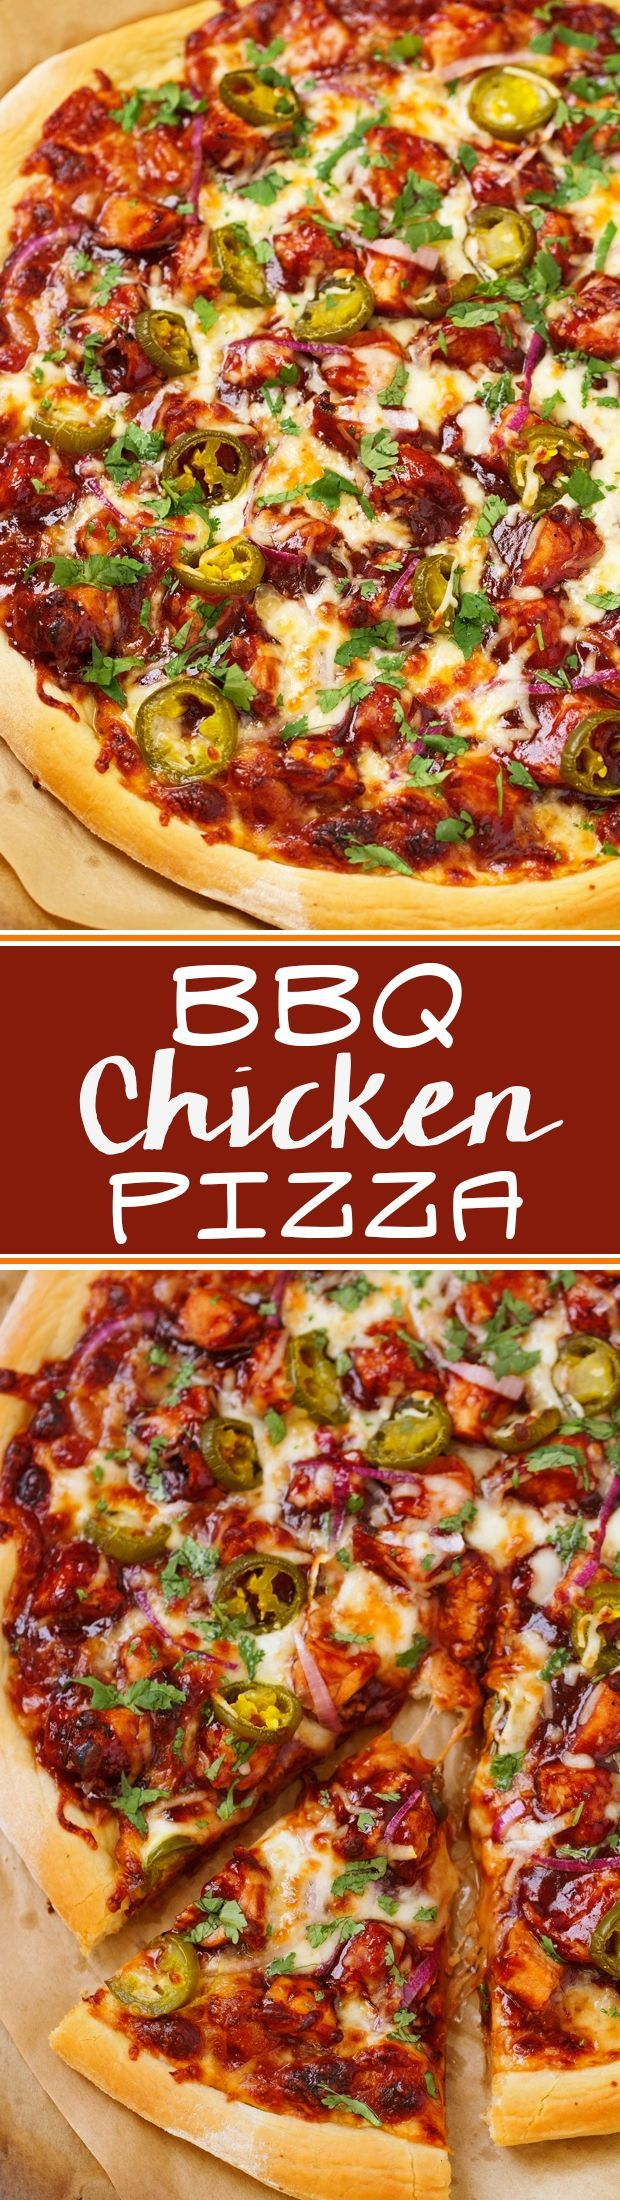 BBQ Chicken Pizza - made with grilled chicken, sliced jalapenos and red onions, and cilantro, So good you'll never go to CPK again!#bbqchickenpizza #chickenpizza #bbqpizza | http://Littlespicejar.com /littlespicejar/